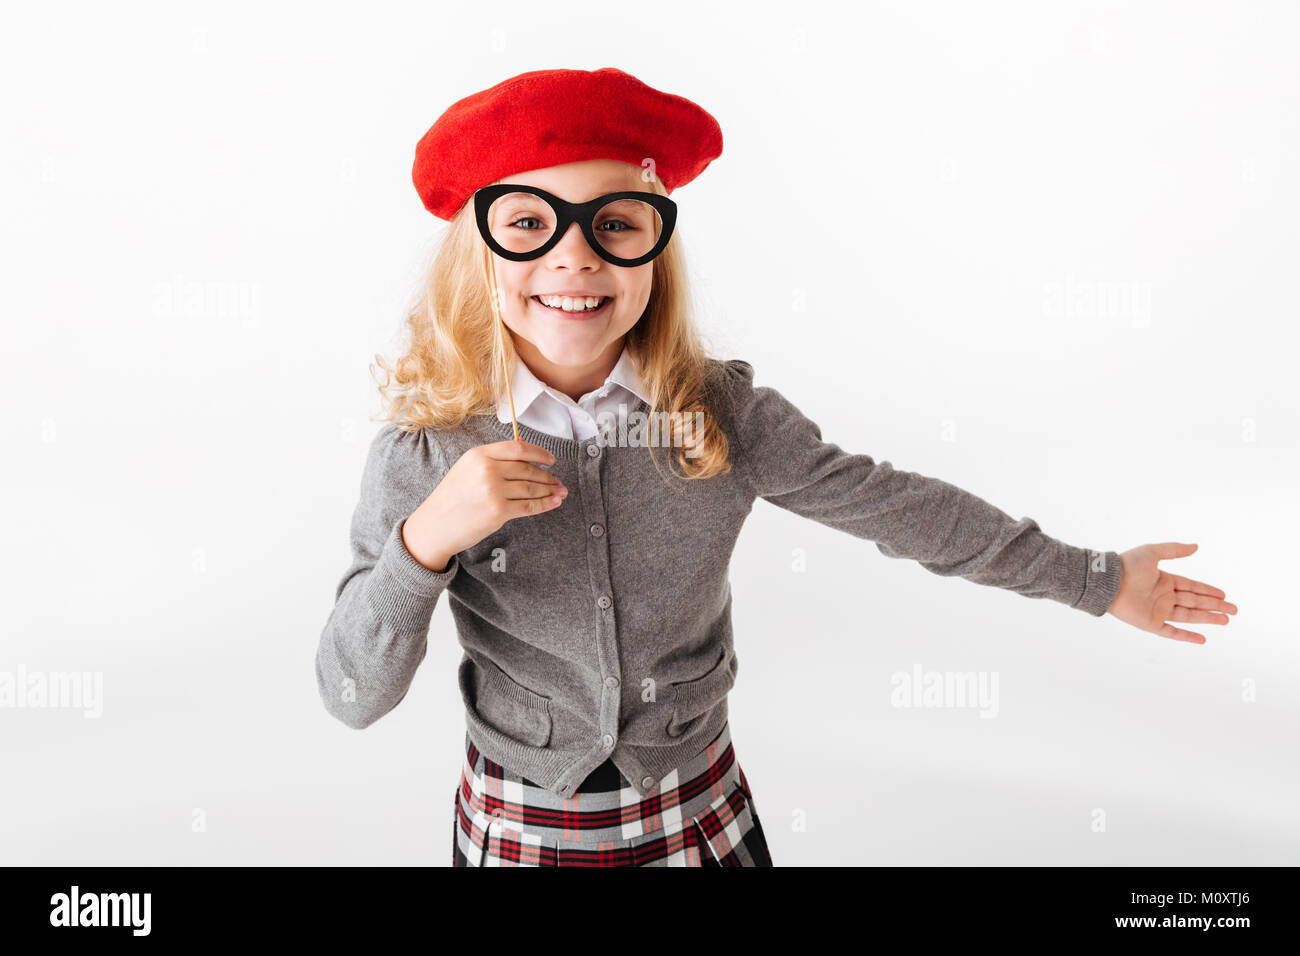 Portrait of a cheerful little schoolgirl dressed in uniform grimacing and looking at camera isolated over white - Stock Image